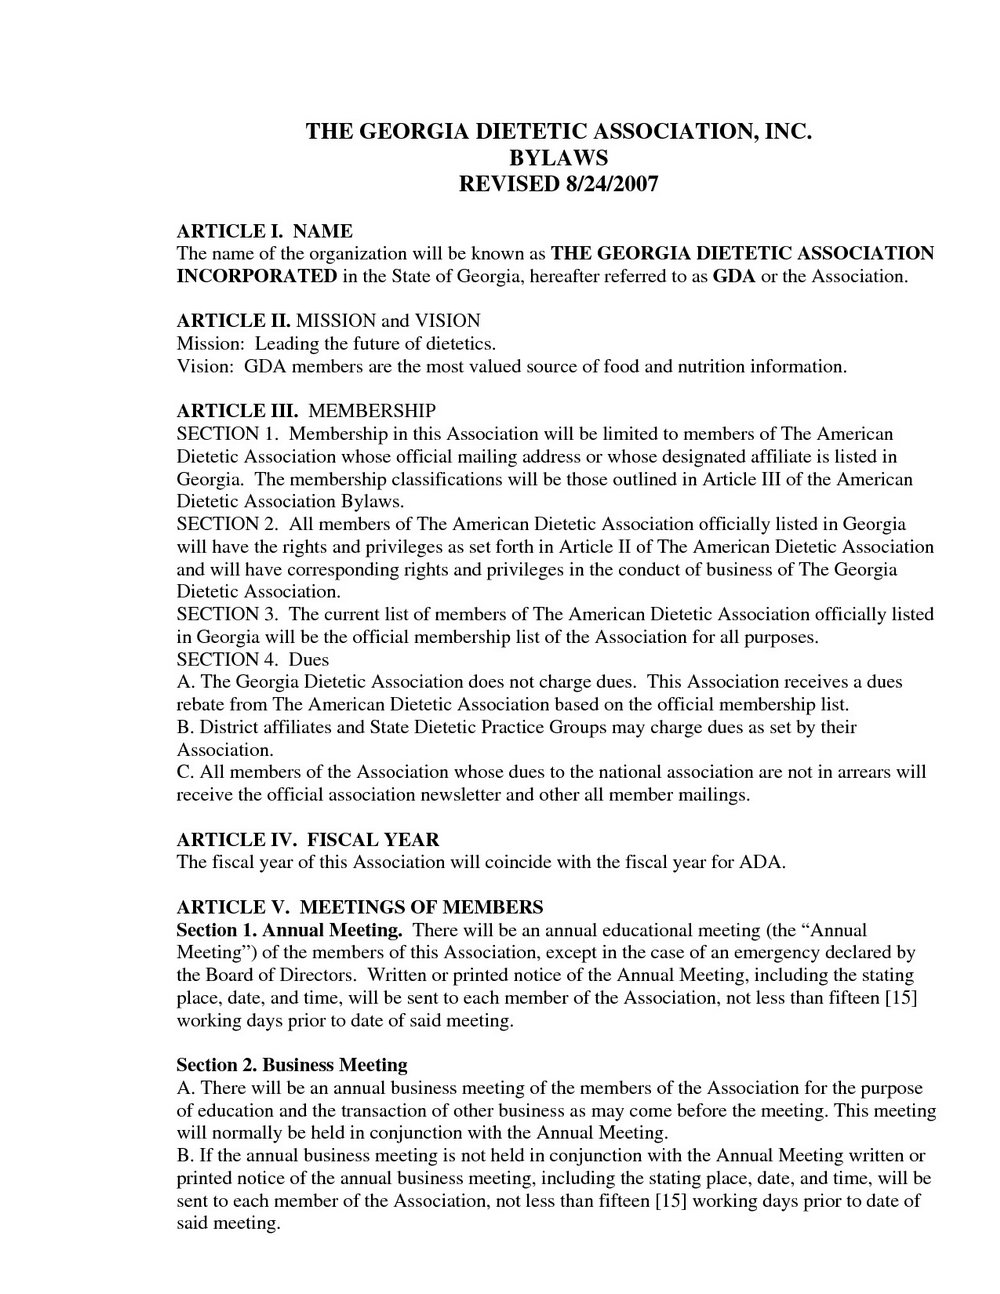 Corporate Bylaws Template Free Canada